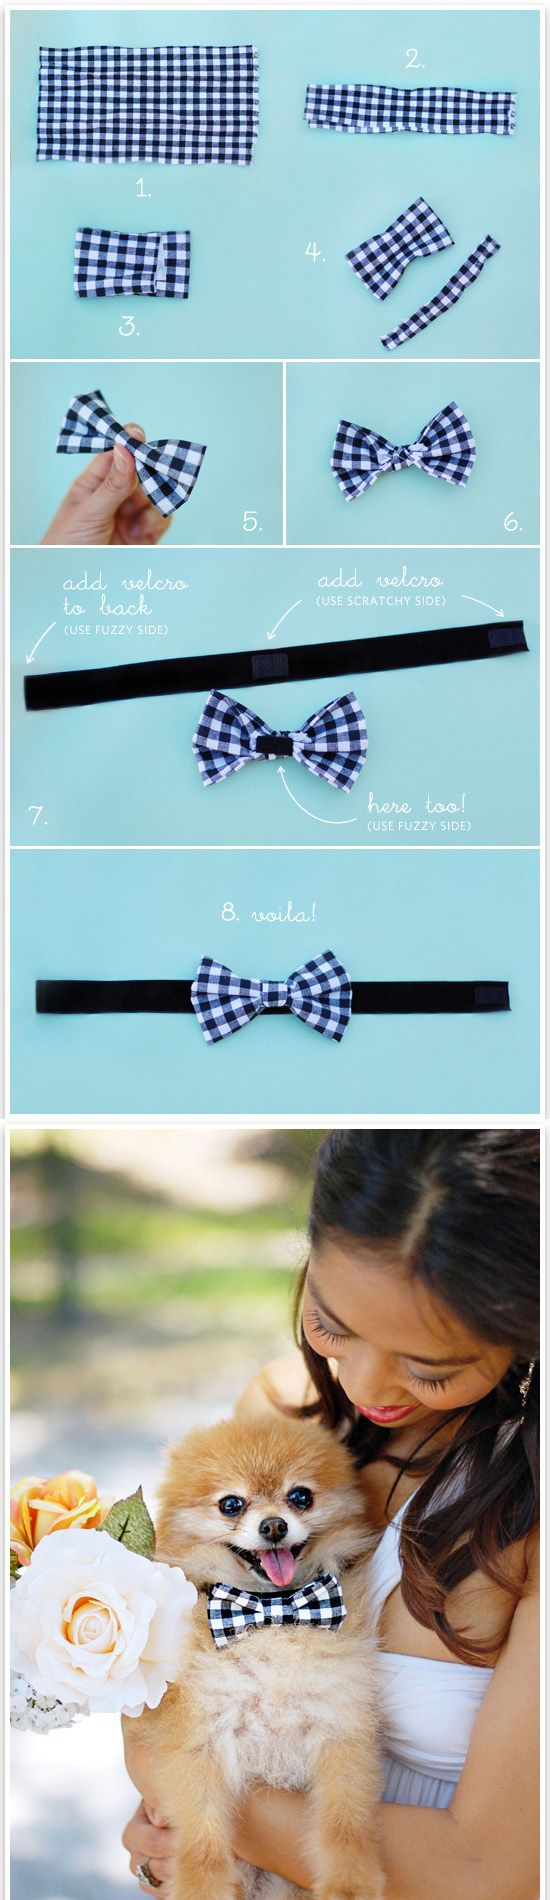 If you own a dog, you have no excuse NOT to make this doggie bow tie. | 31 Easy DIY Projects You Won't Believe Are No-Sew